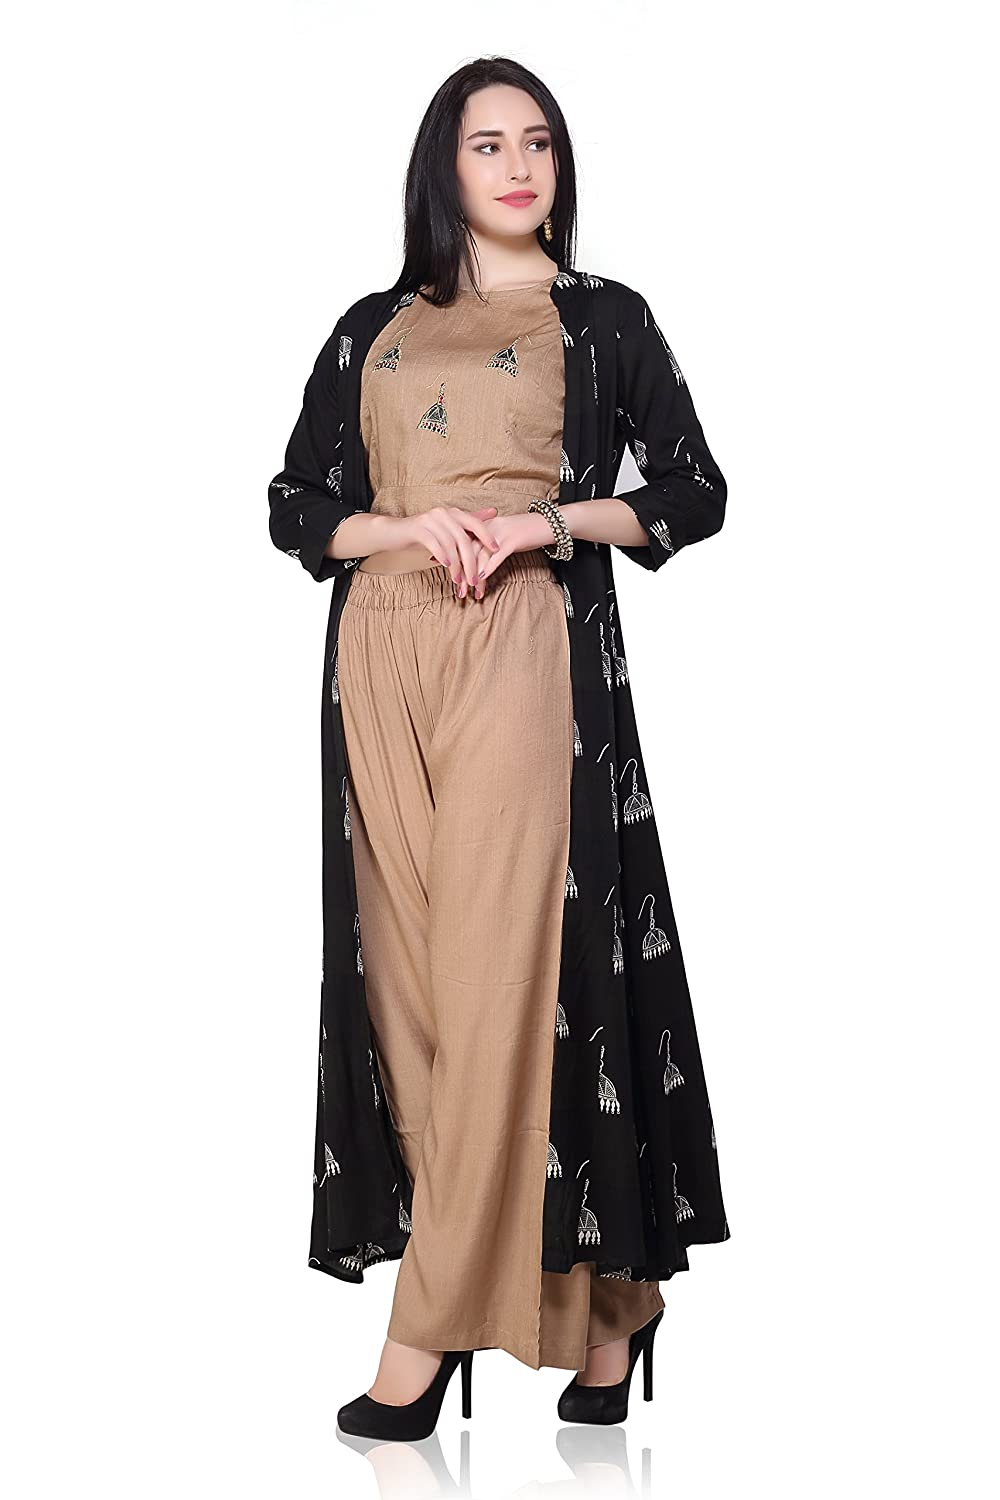 897f755df3c Long Skirt With Crop Top And Jacket Stylish Indo Western Dress ...